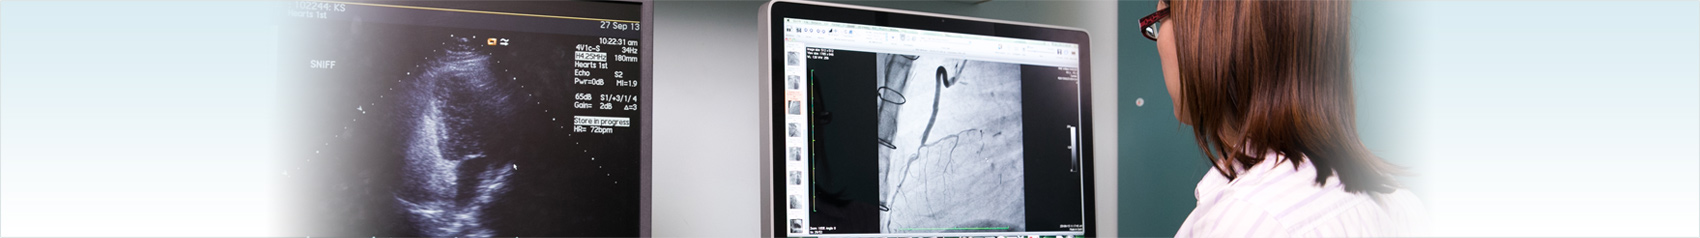 Banner Clinica Consultation Angiography Coronary Angiogram